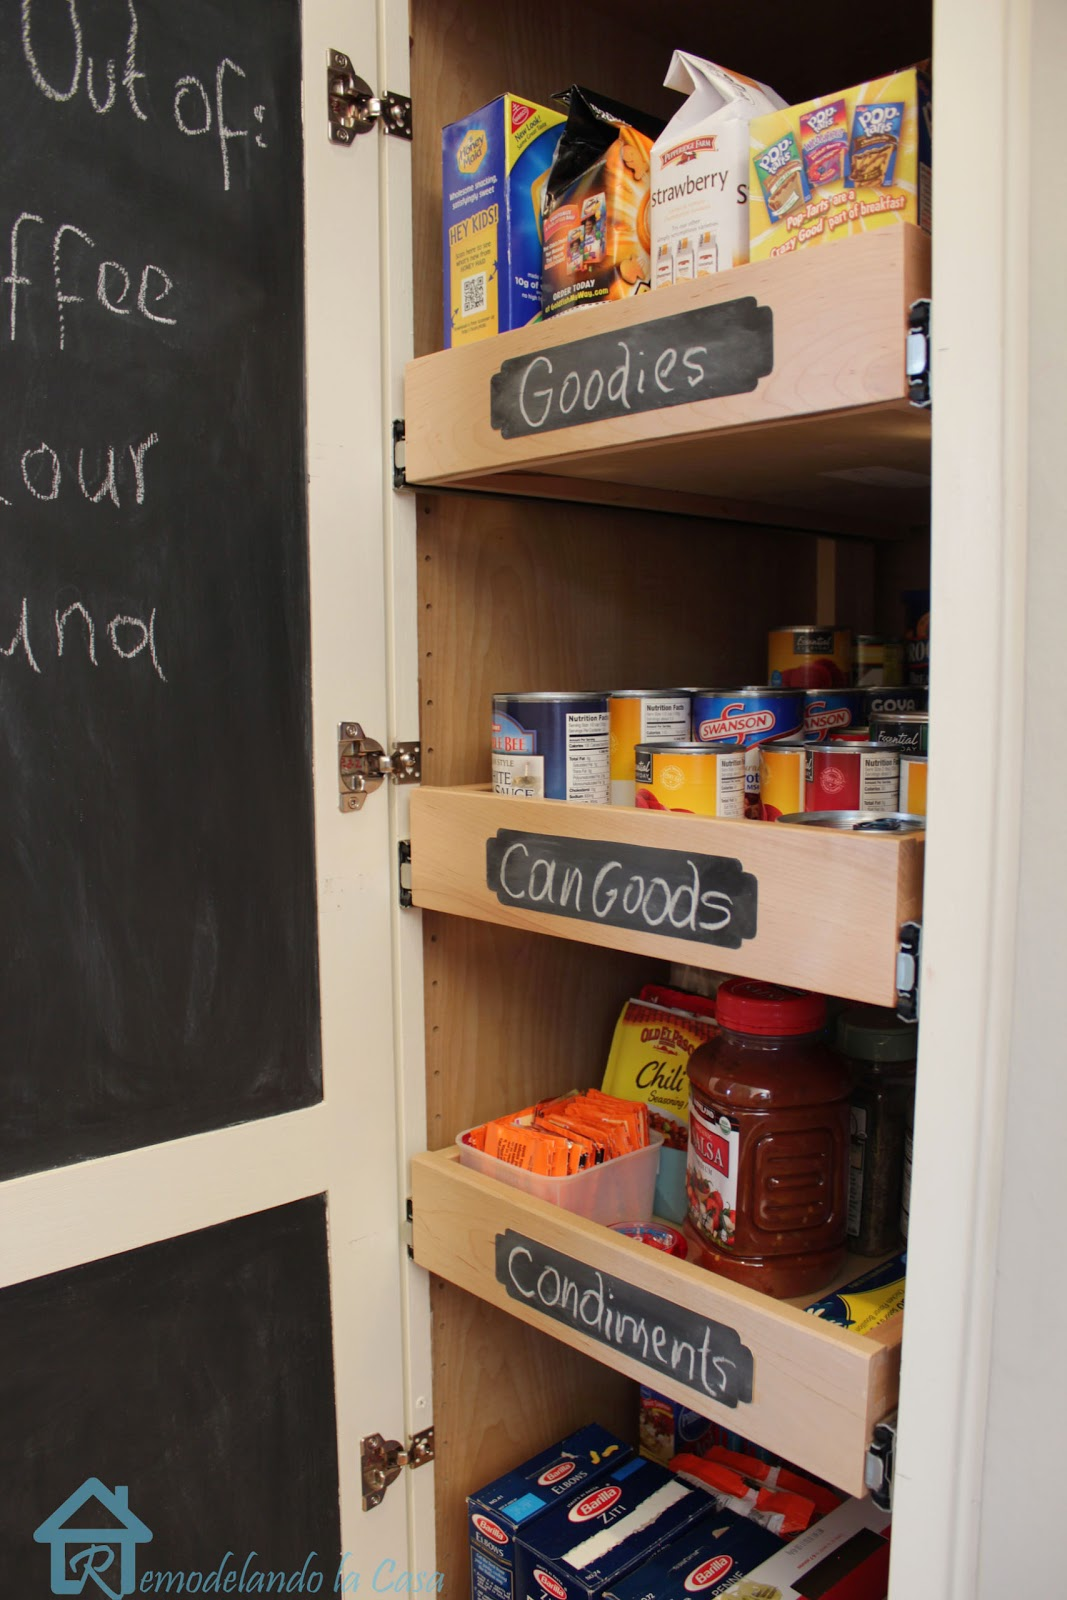 Kitchen Chalkboard With Shelf Remodelando La Casa Chalkboard Labels